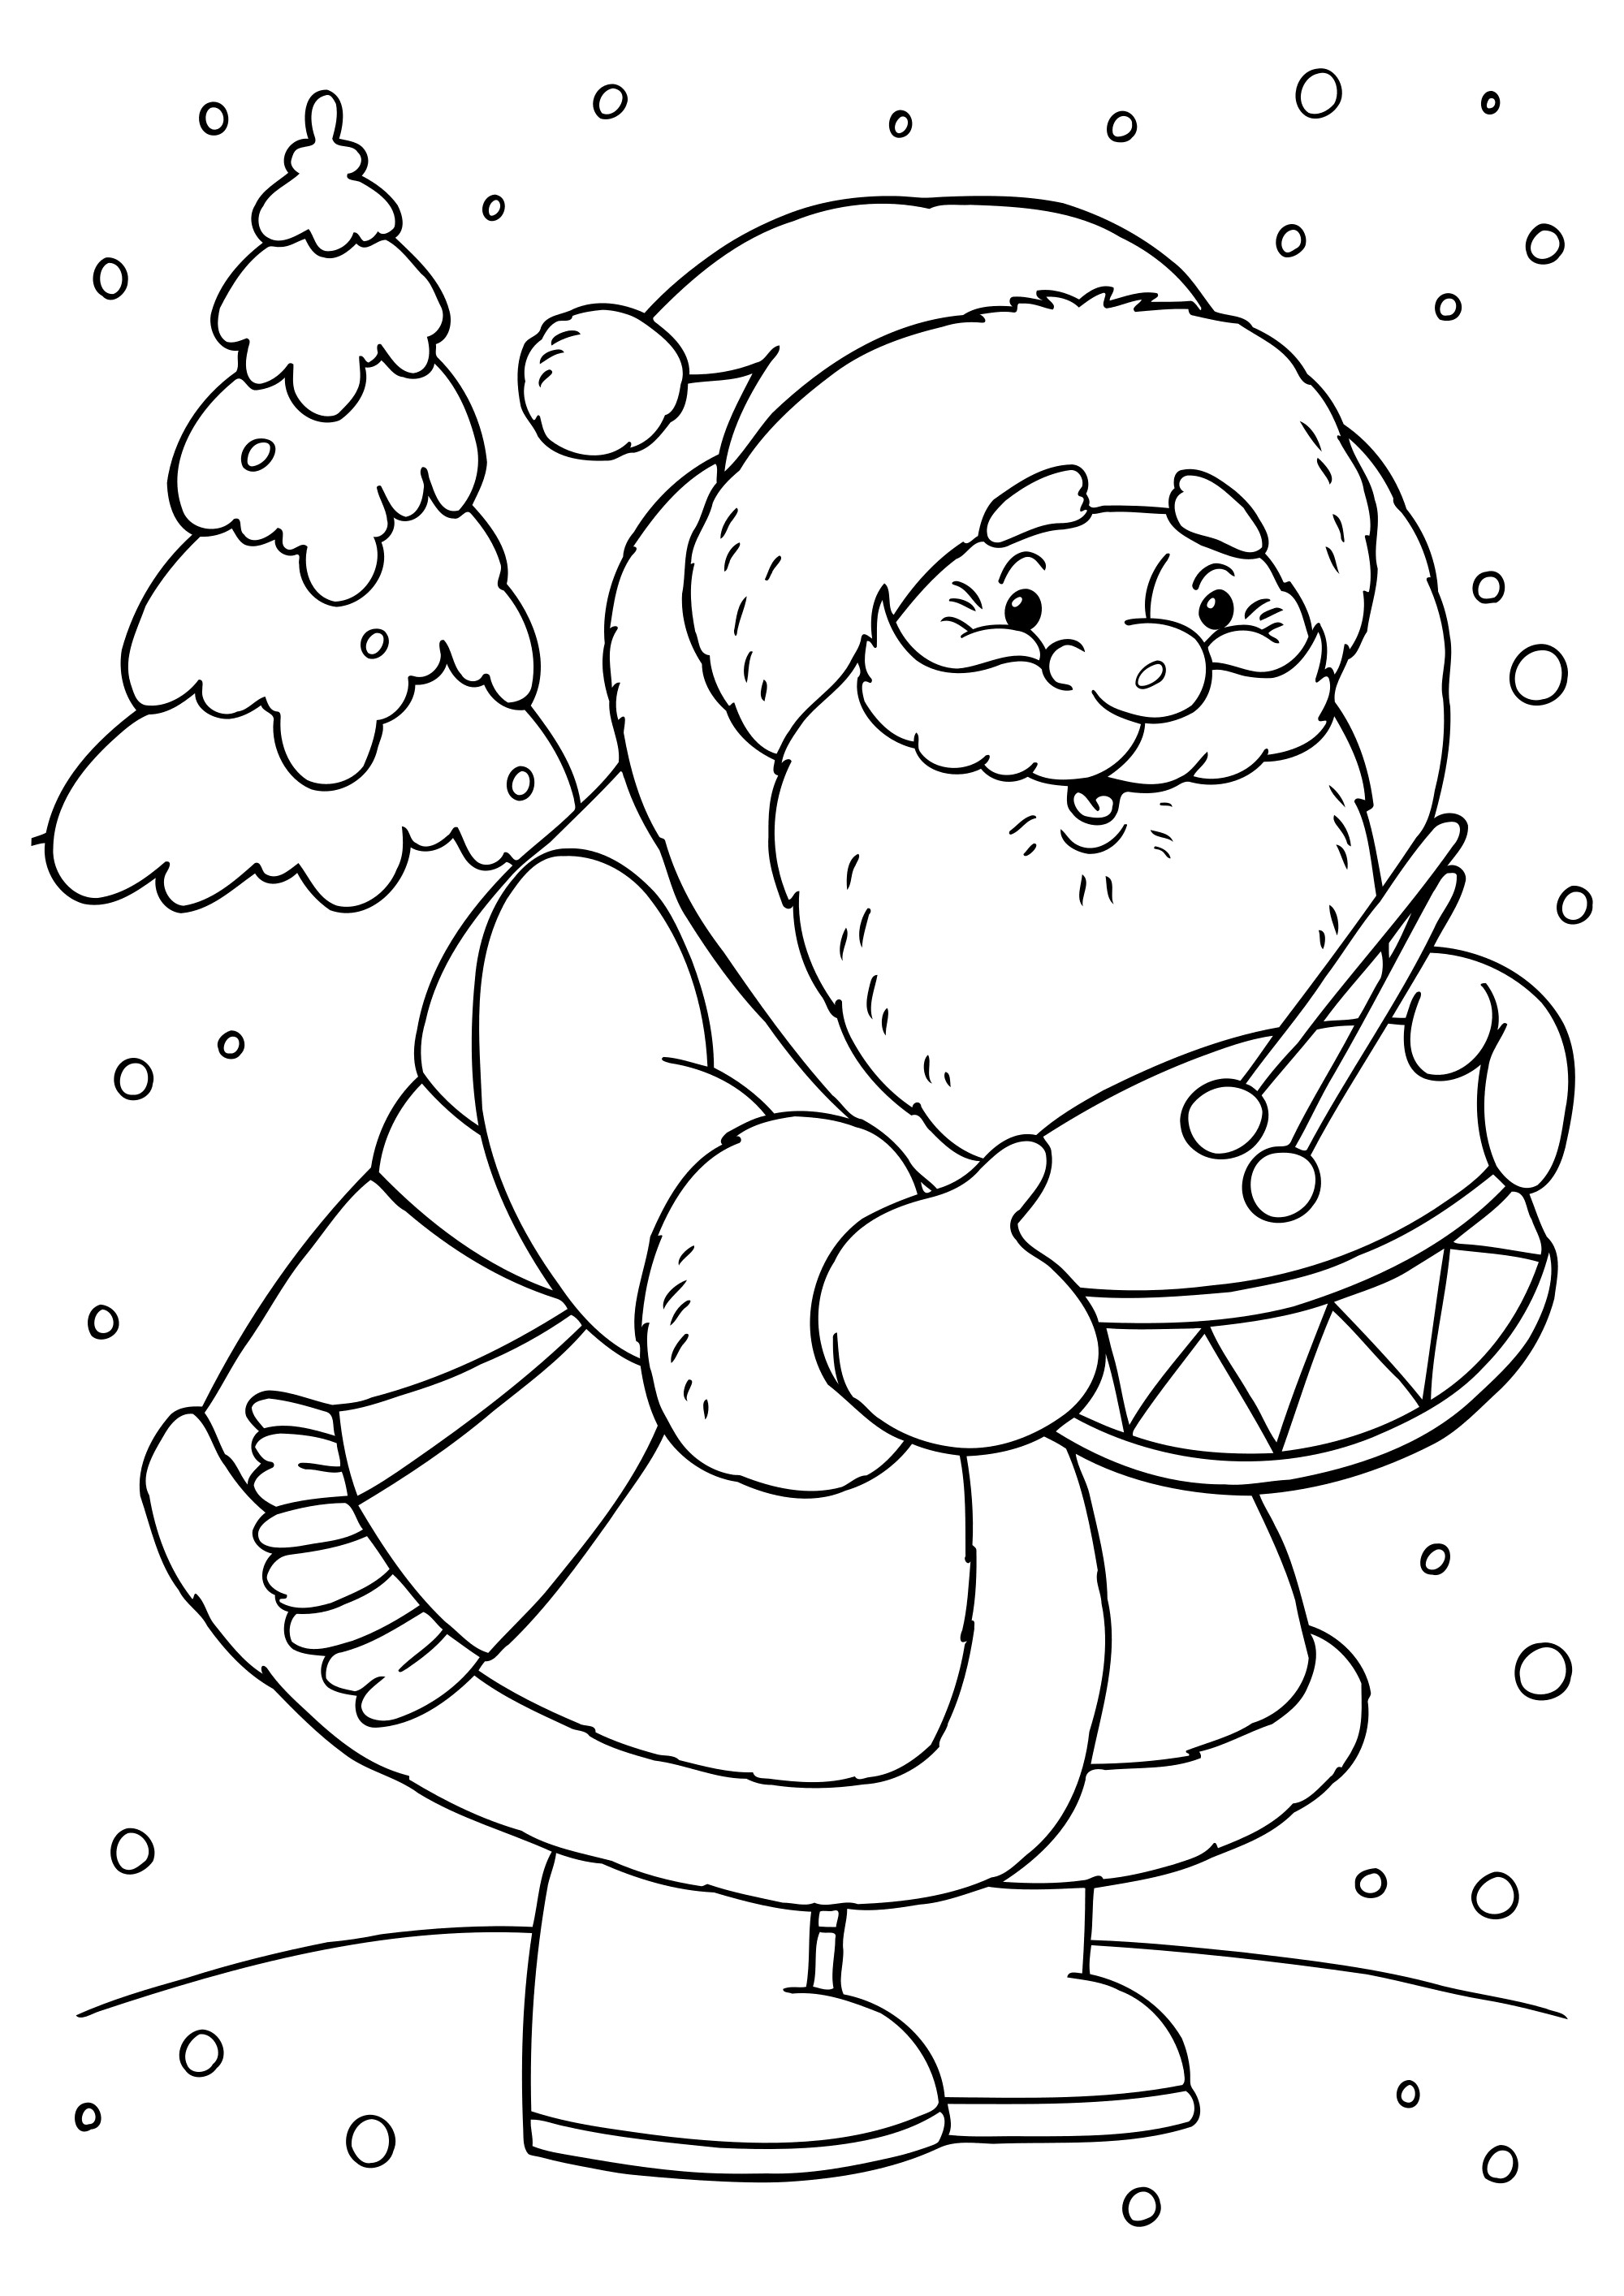 Best ideas about Free Coloring Pages Com . Save or Pin Drum coloring pages to and print for free Now.